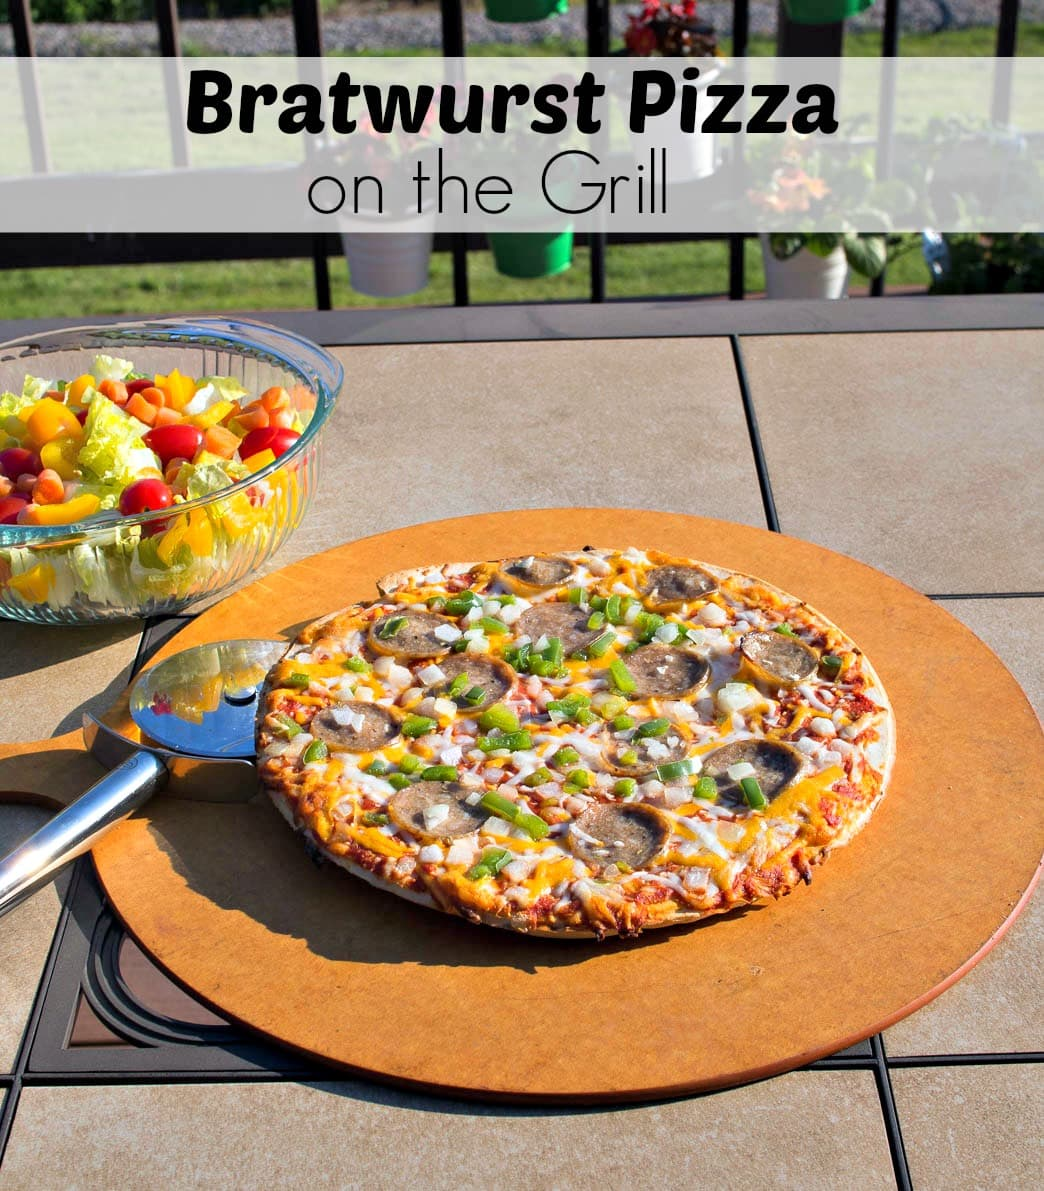 Bratwurst Pizza on the Grill - a quick and affordable family meal that is different and not boring